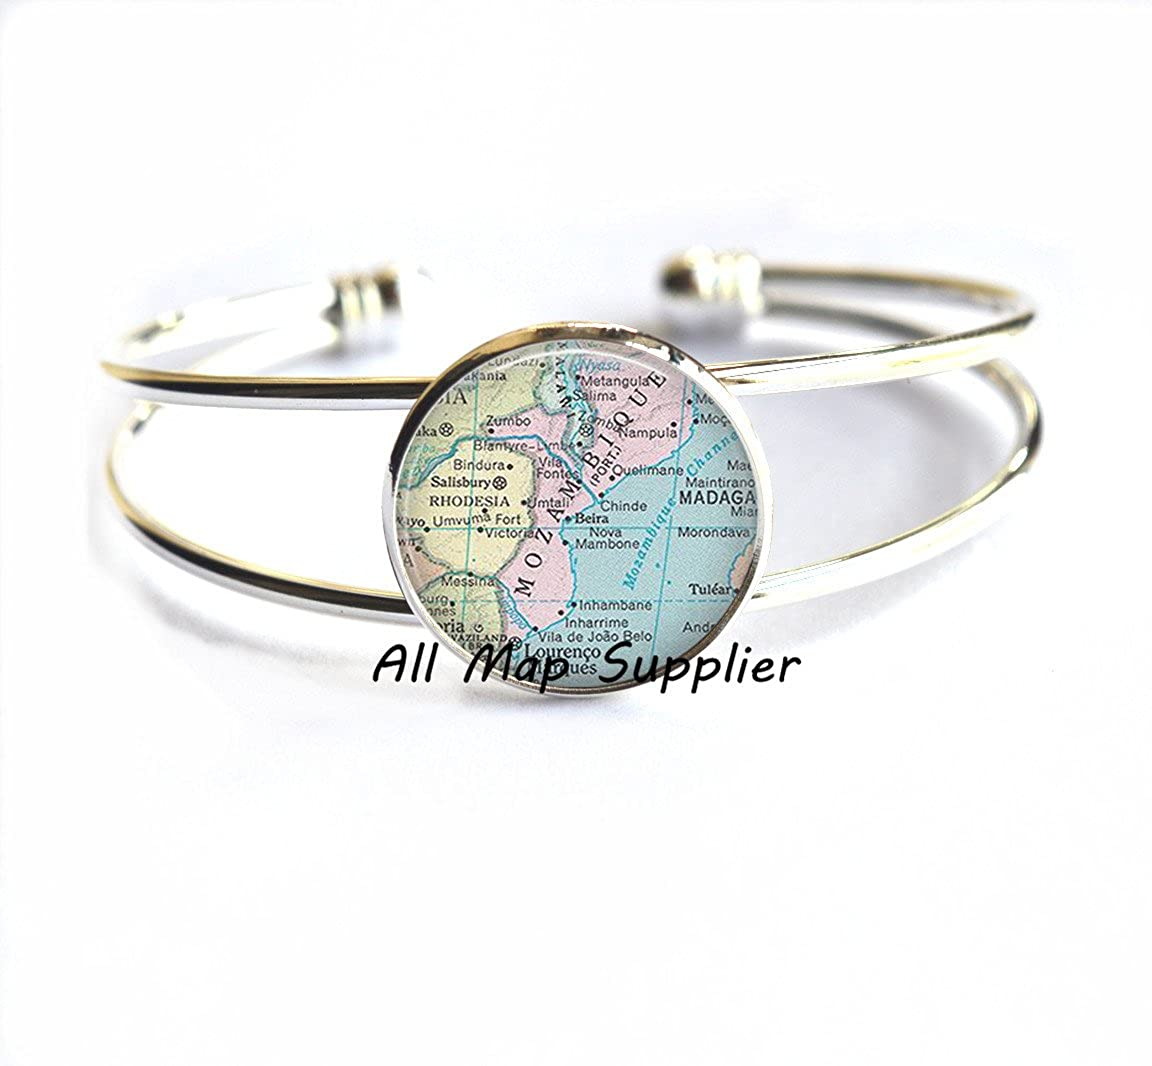 Mozambique Bracelet map jewelry,A0281 Mozambique map Bracelets Mozambique Bracelets Charming Bracelet,Panama City,Mozambique map Bracelet